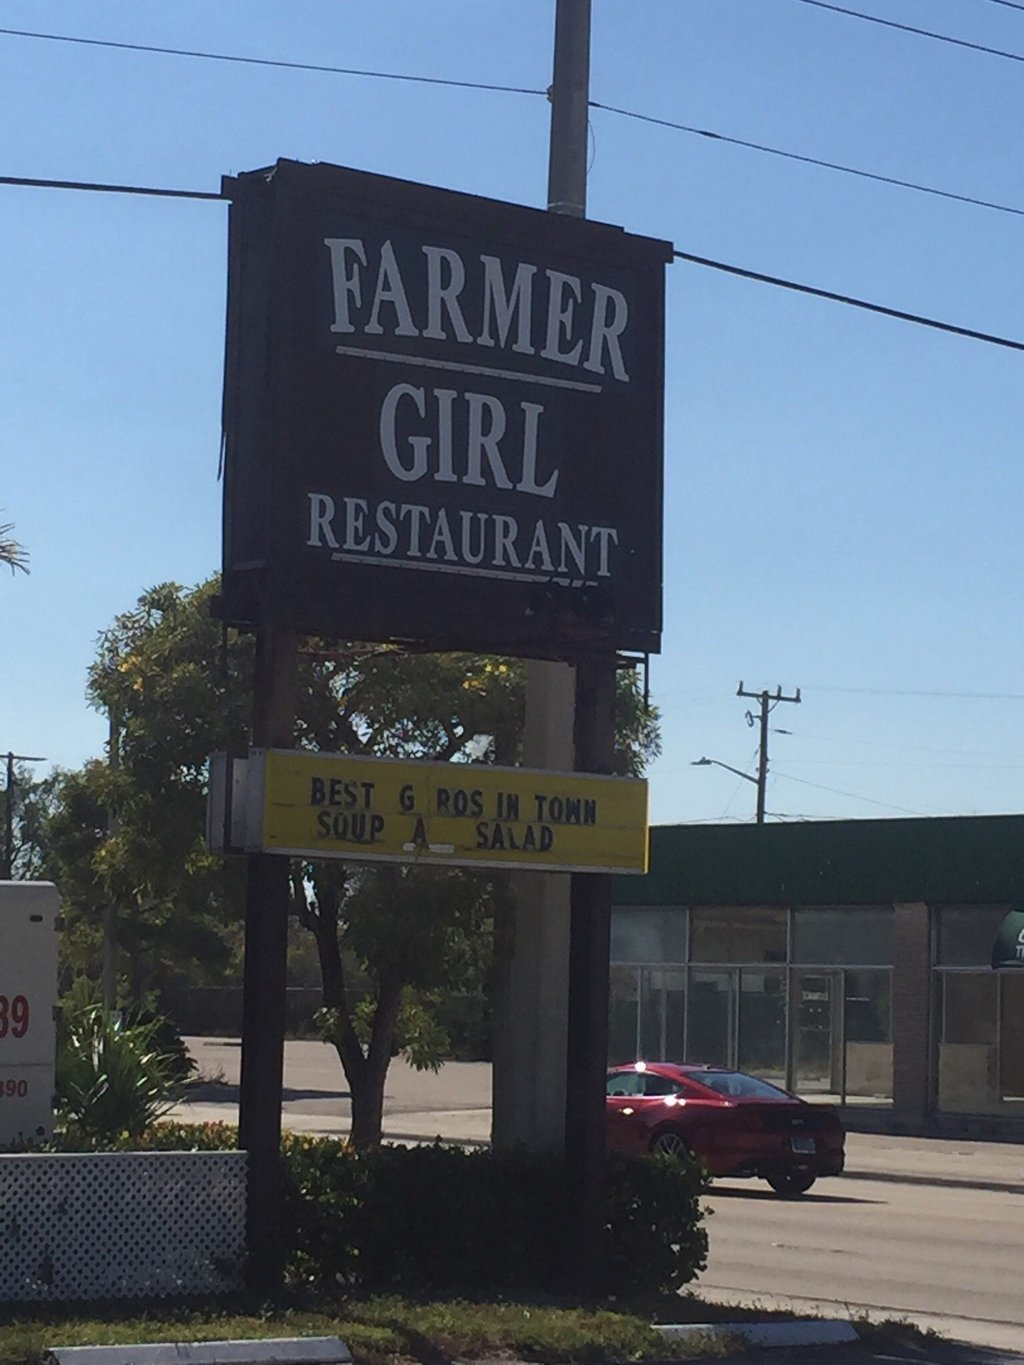 Farmer Girl Restaurant